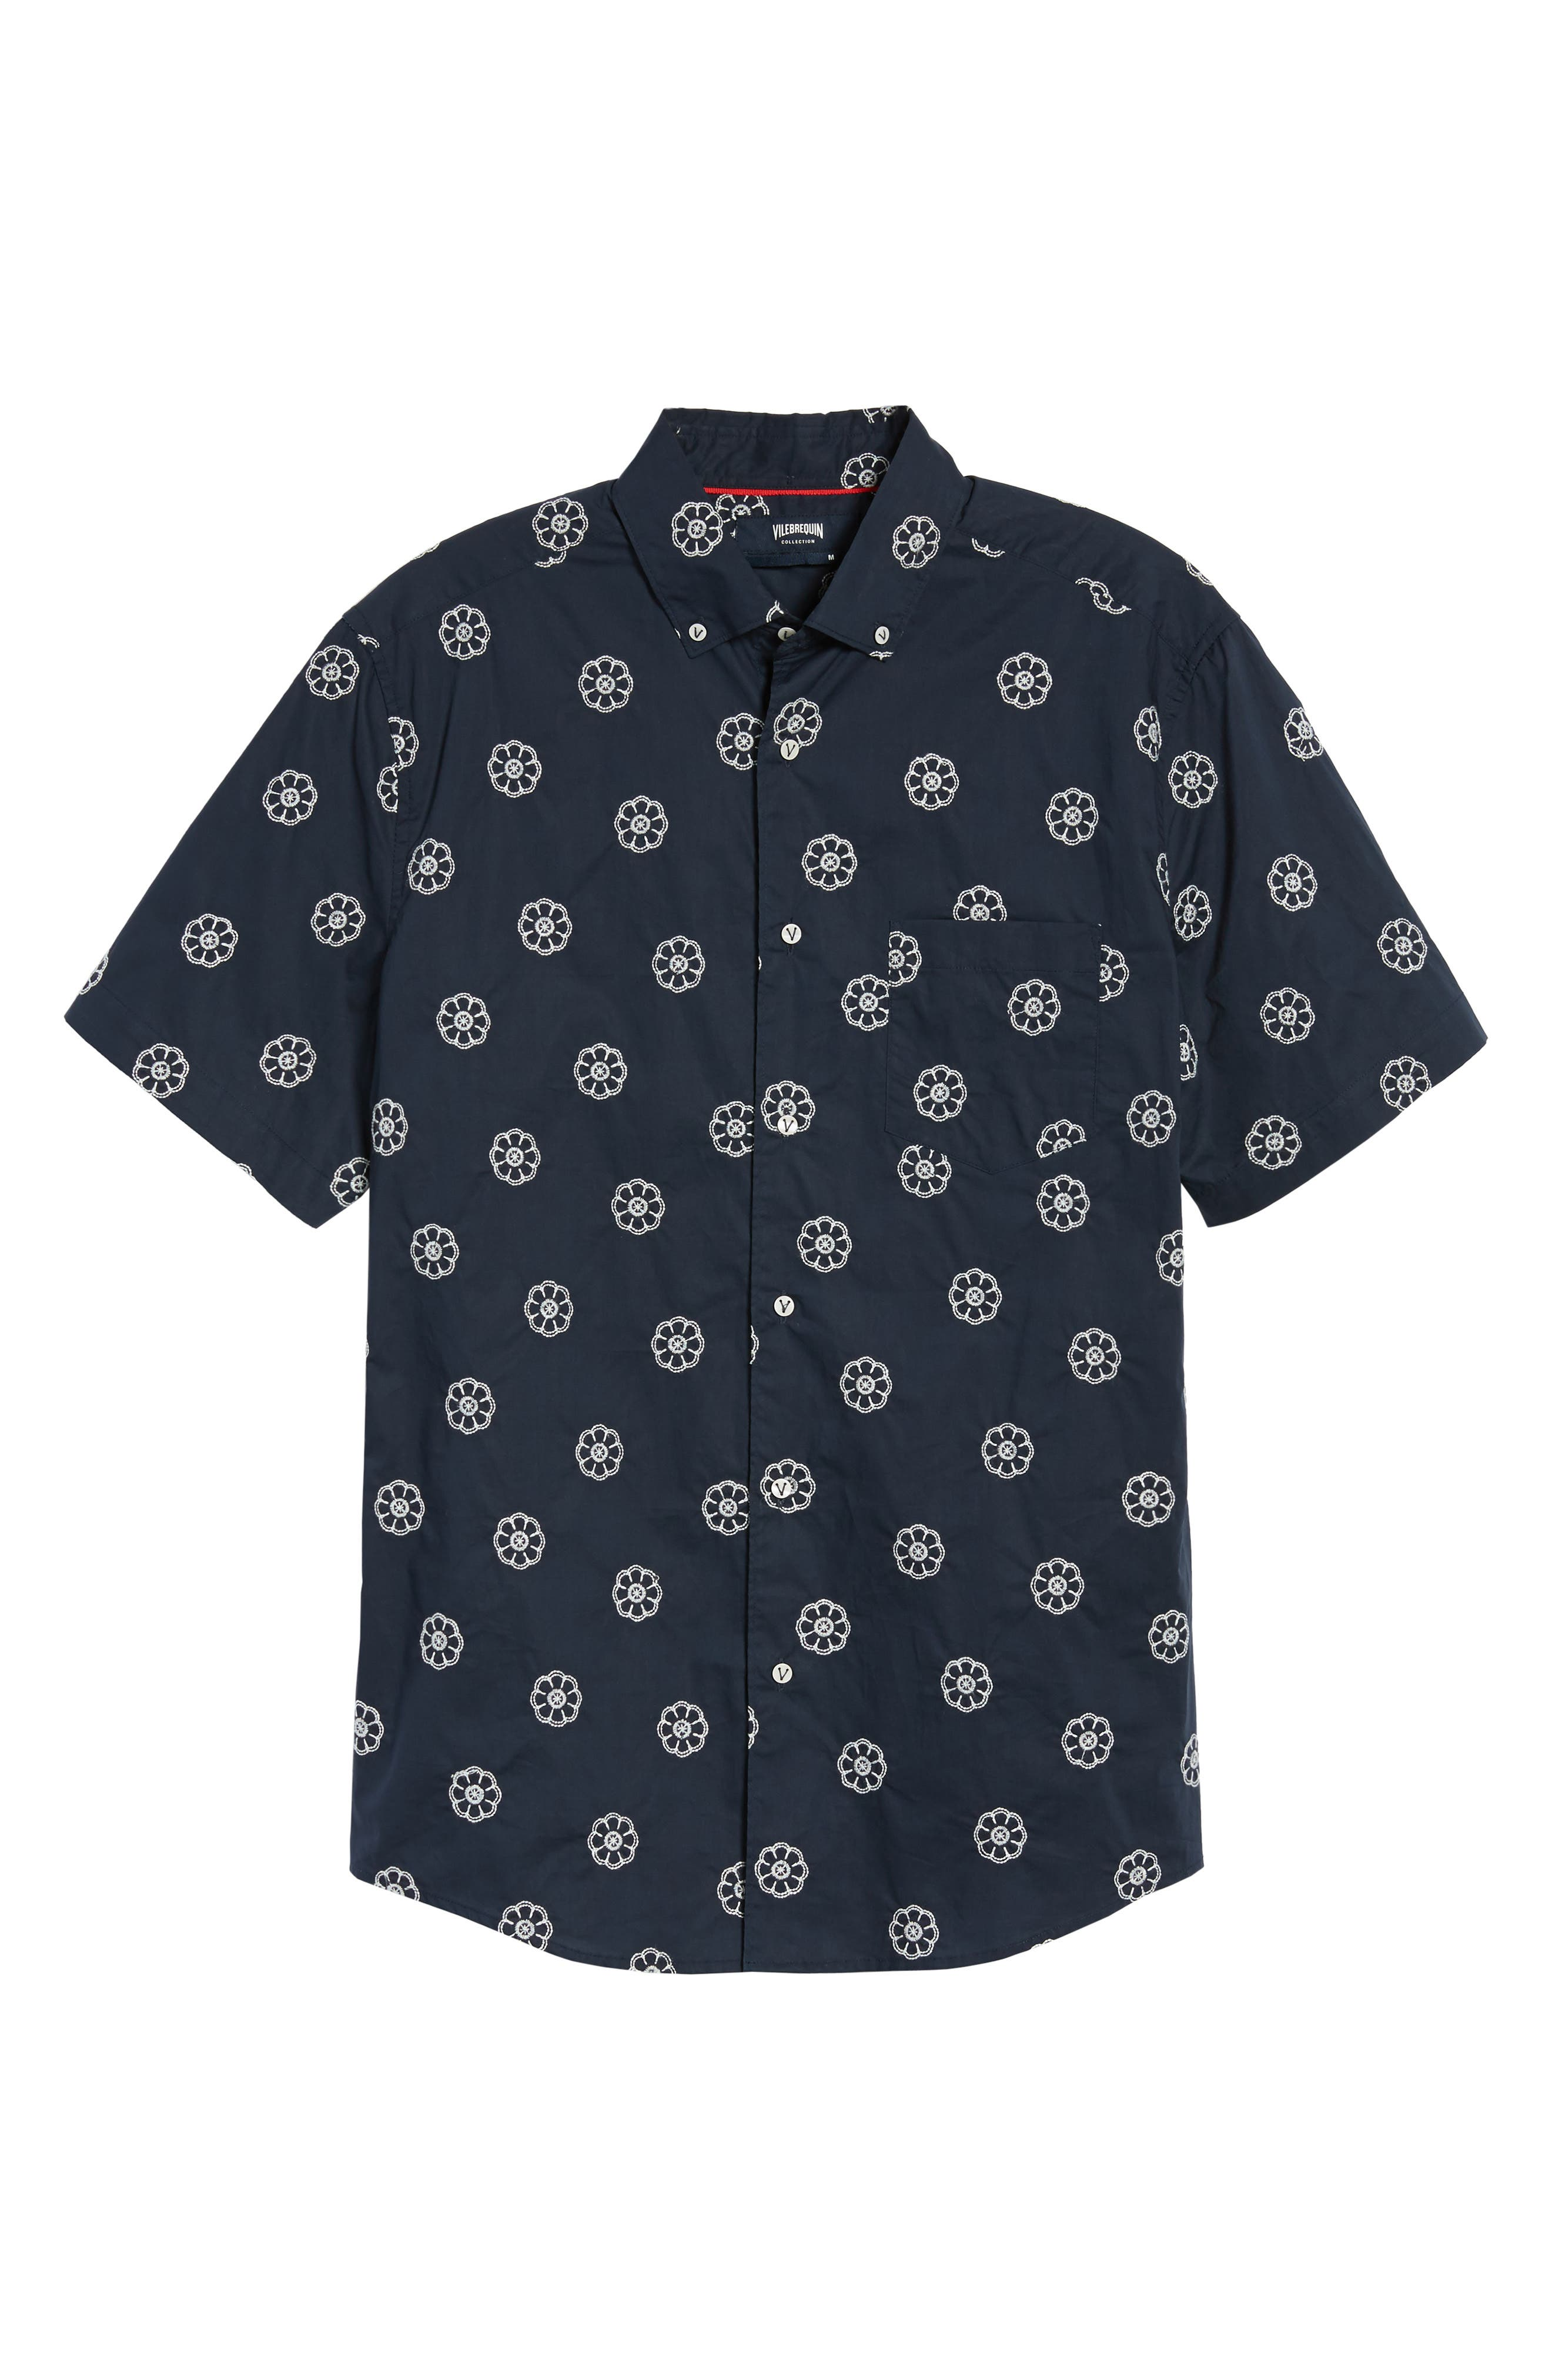 Embroidered Floral Poplin Shirt,                             Alternate thumbnail 6, color,                             Squid Ink W/ Canvas